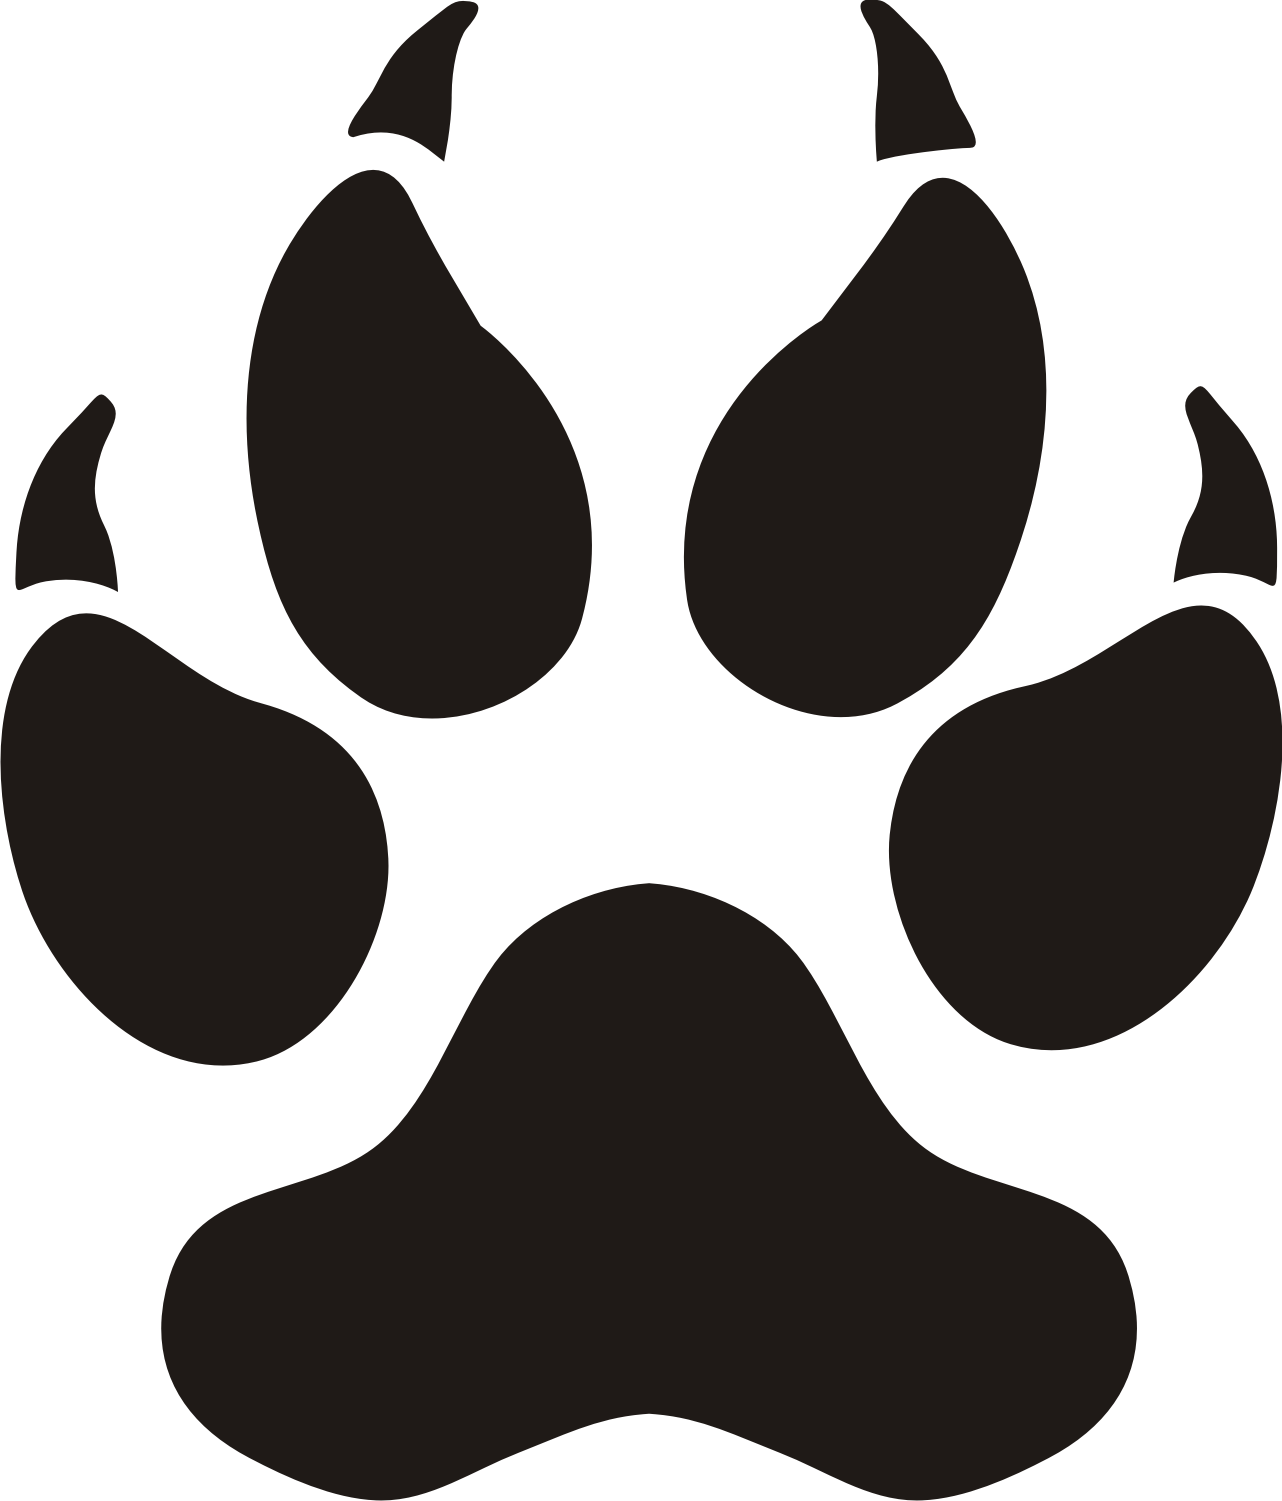 Paw Silhouette Vector - ClipArt Best